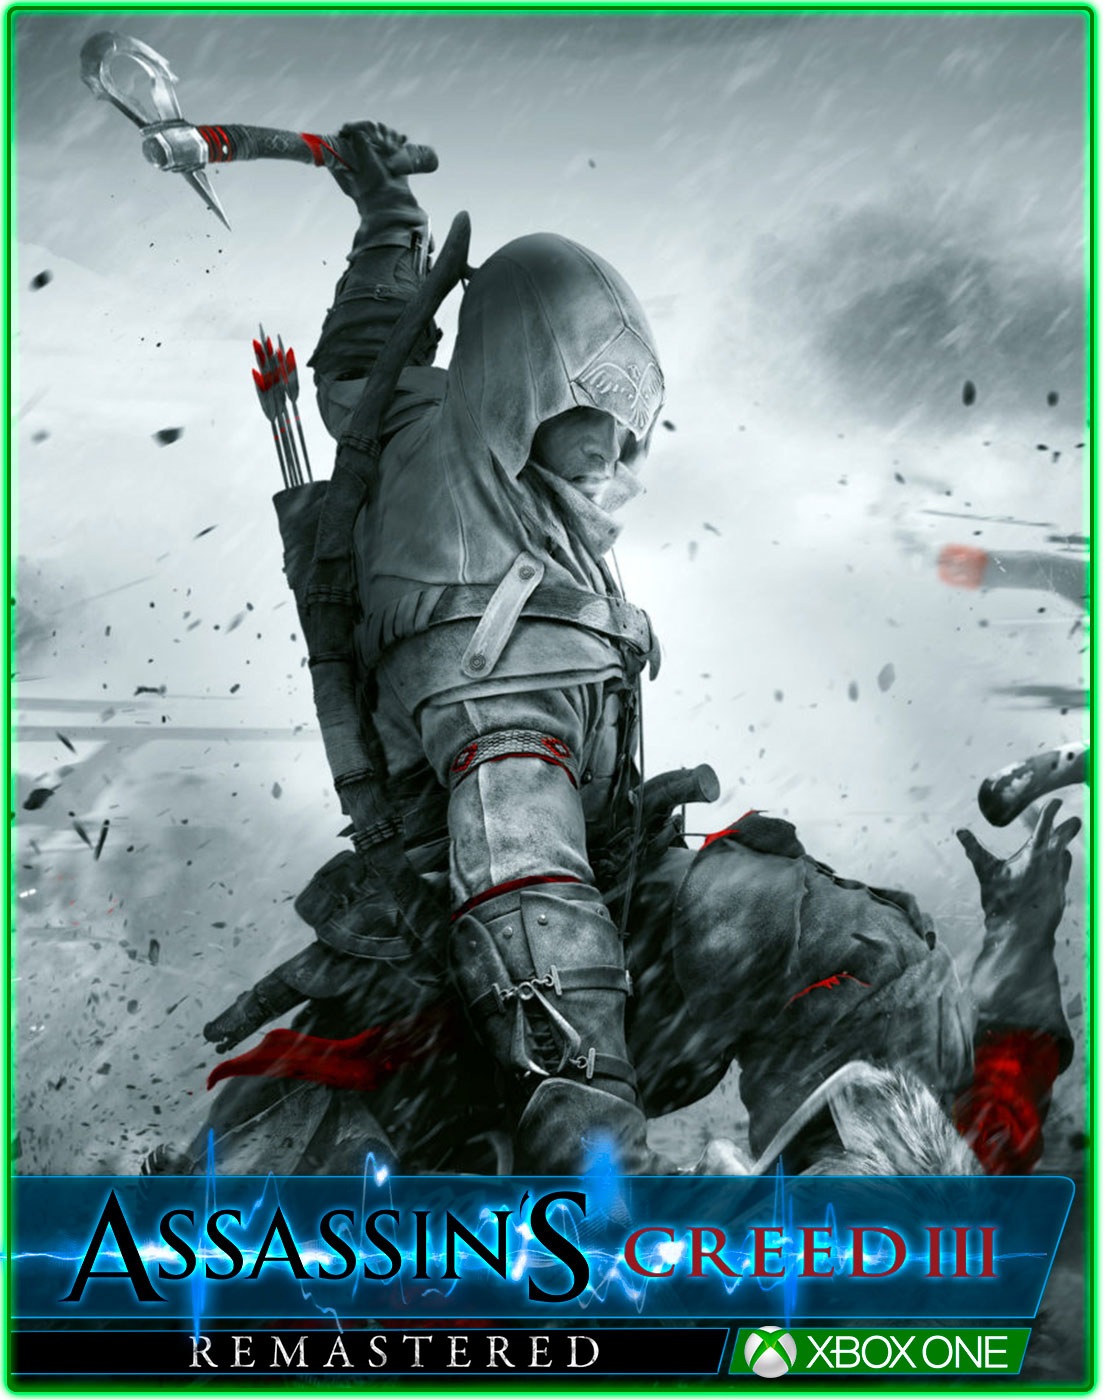 Assassin's Creed 3 Remastered(XBOX ONE) 2019